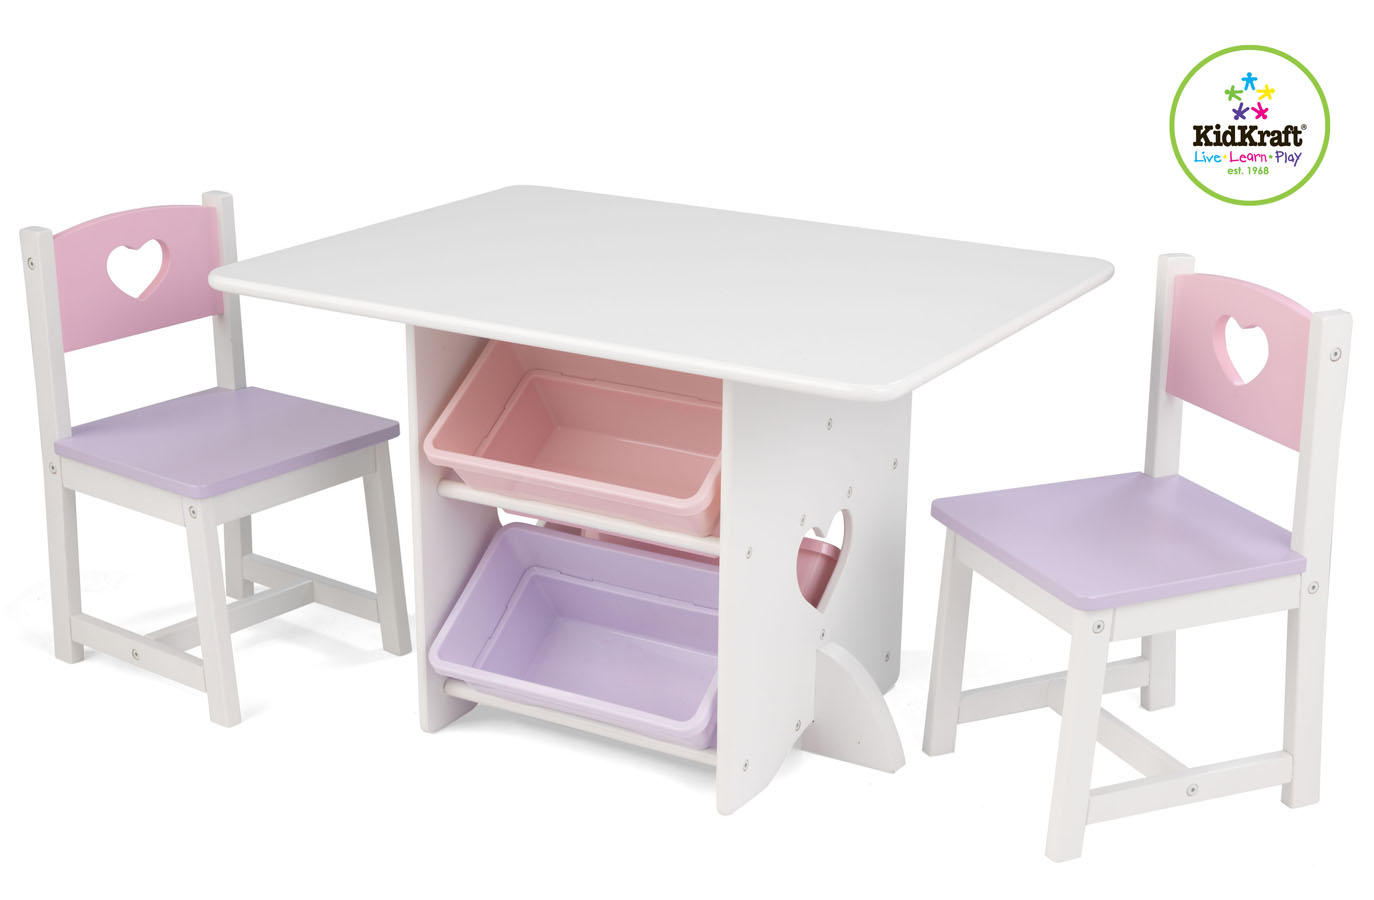 Excellent KidKraft Heart Table and Chair Set 1374 x 900 · 98 kB · jpeg